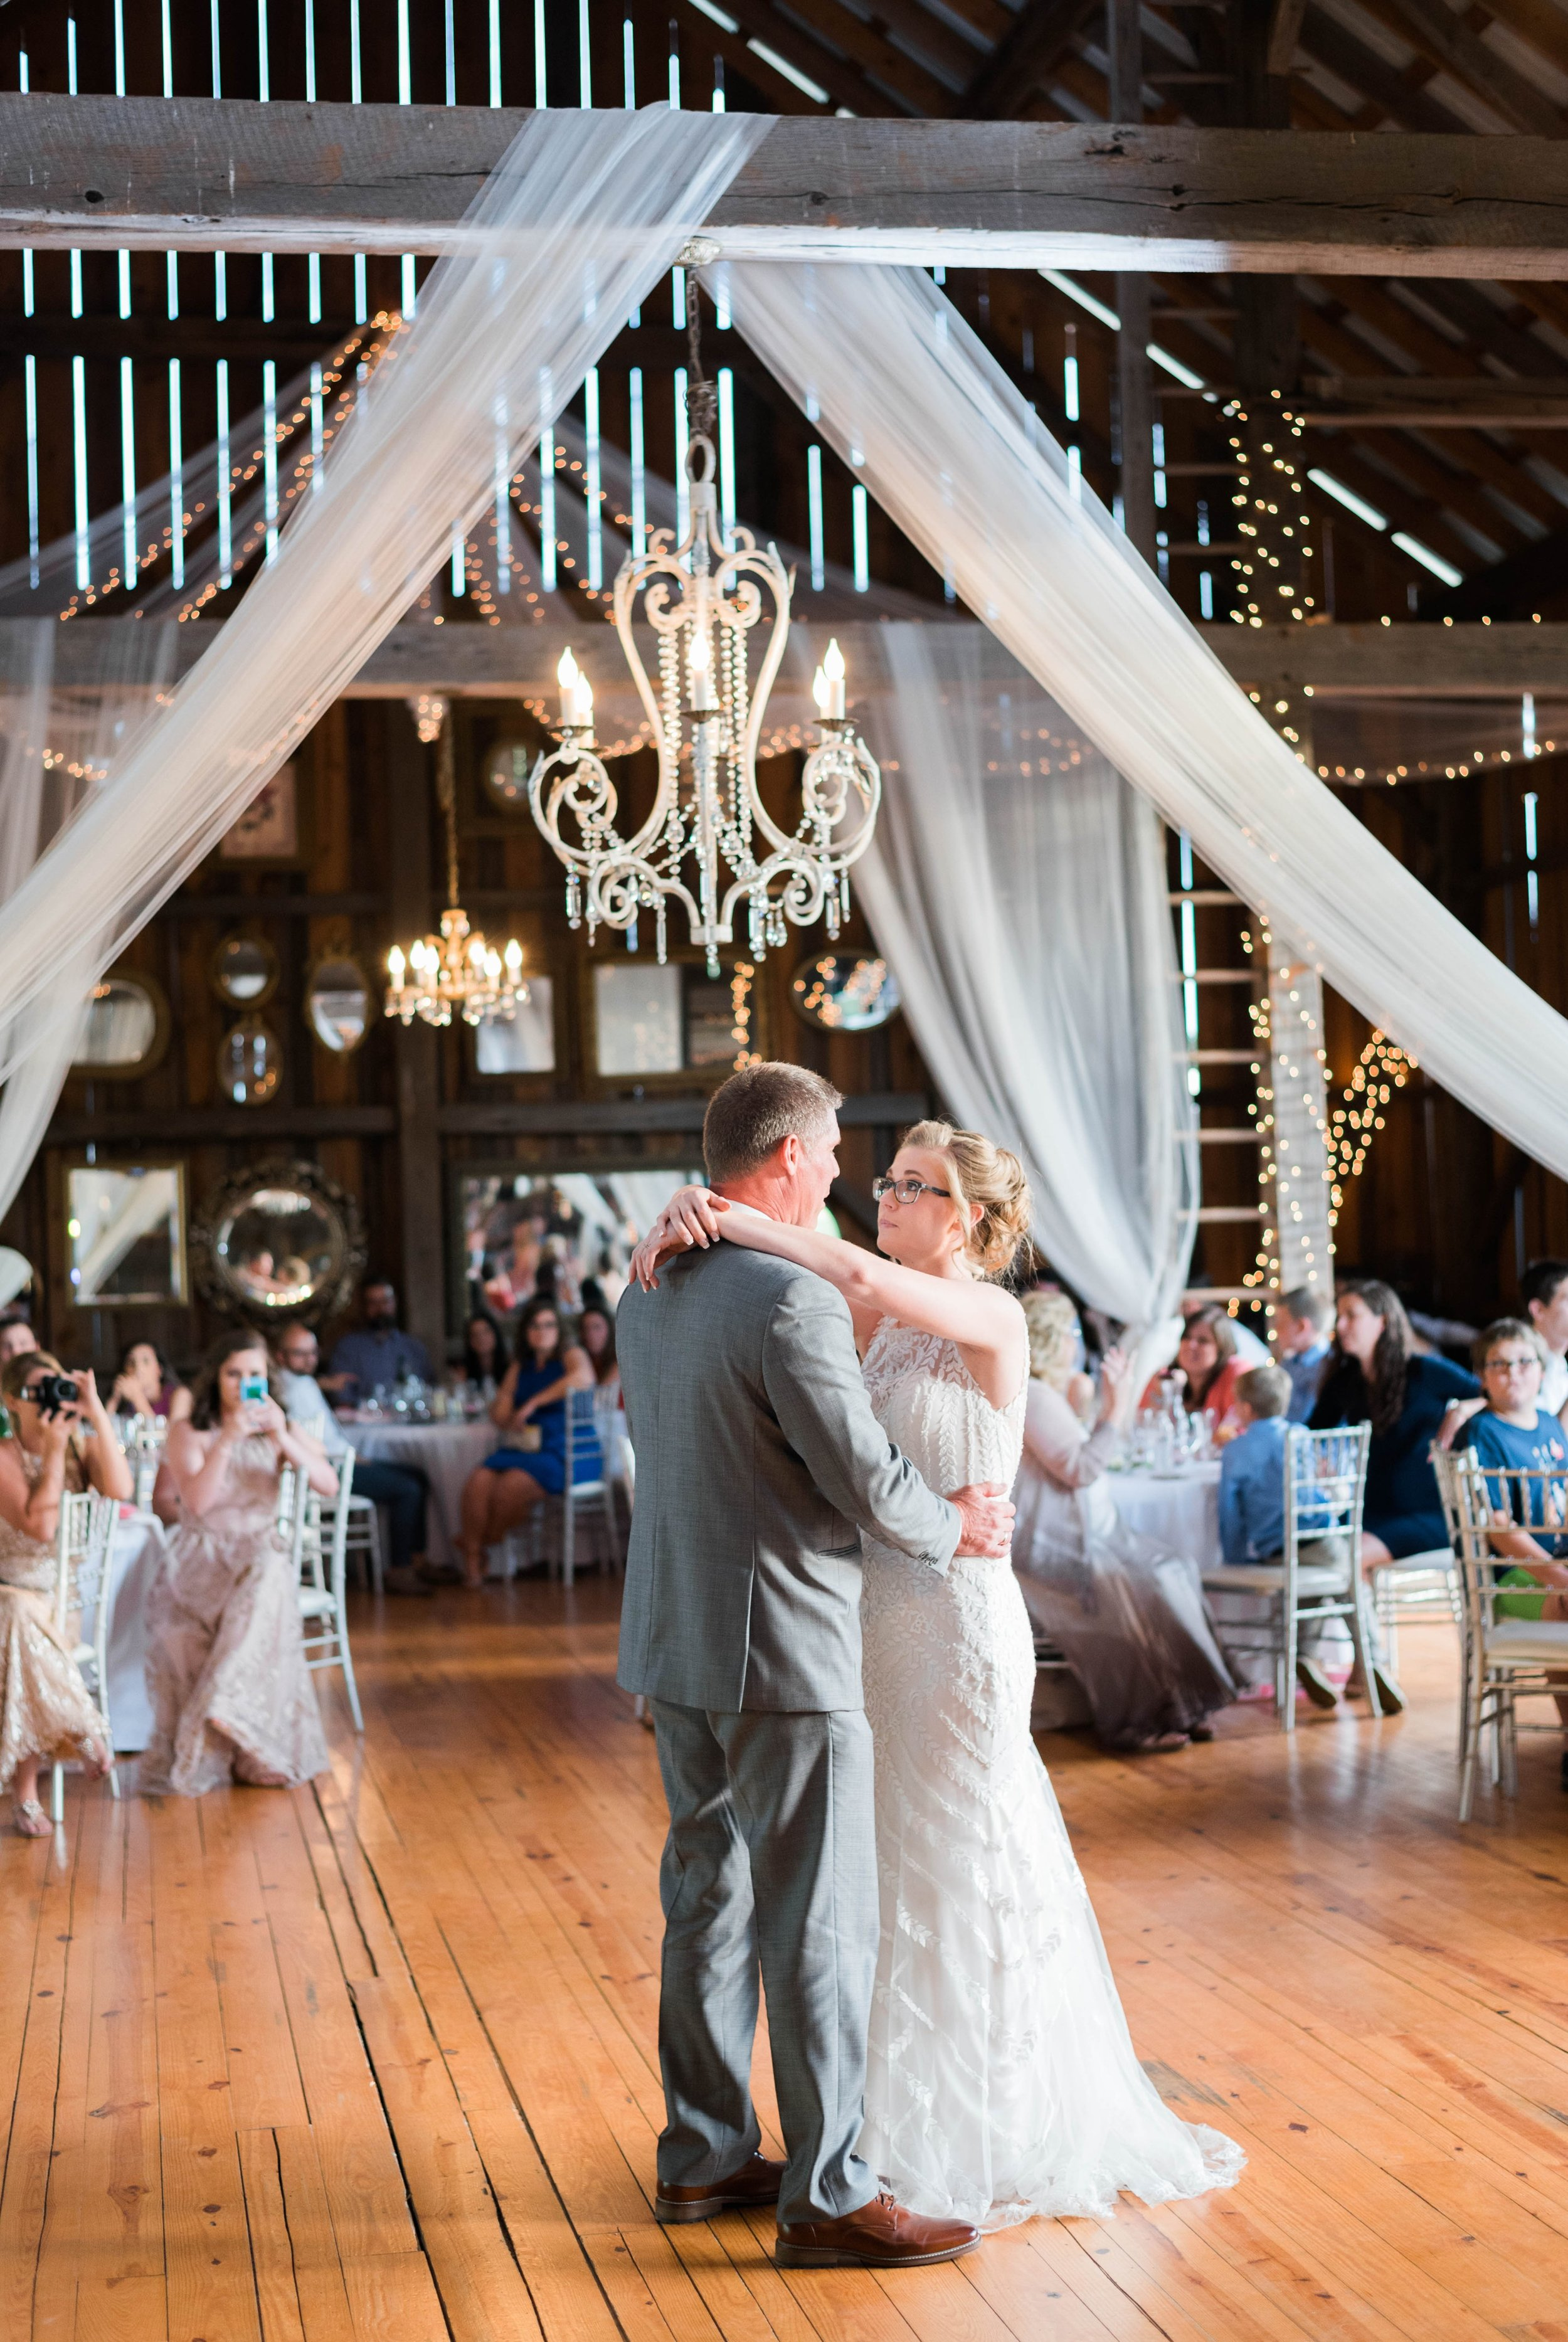 SorellaFarms_VirginiaWeddingPhotographer_BarnWedding_Lynchburgweddingphotographer_DanielleTyler 15.jpg